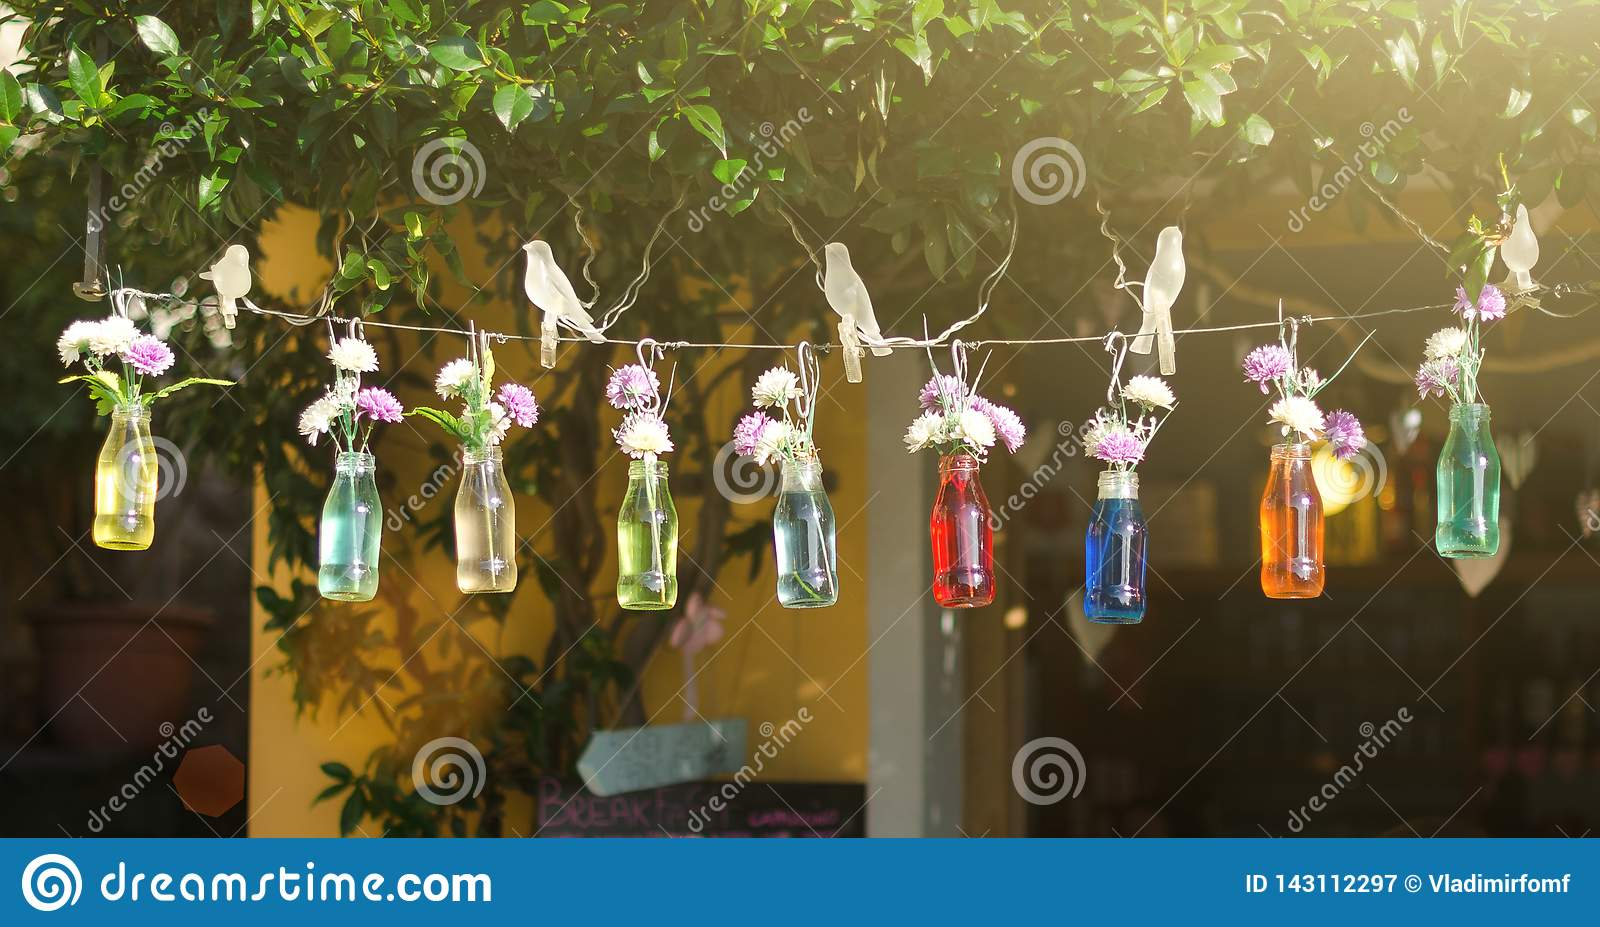 Bottles with colored water and flowers hanging on a string on summer street background